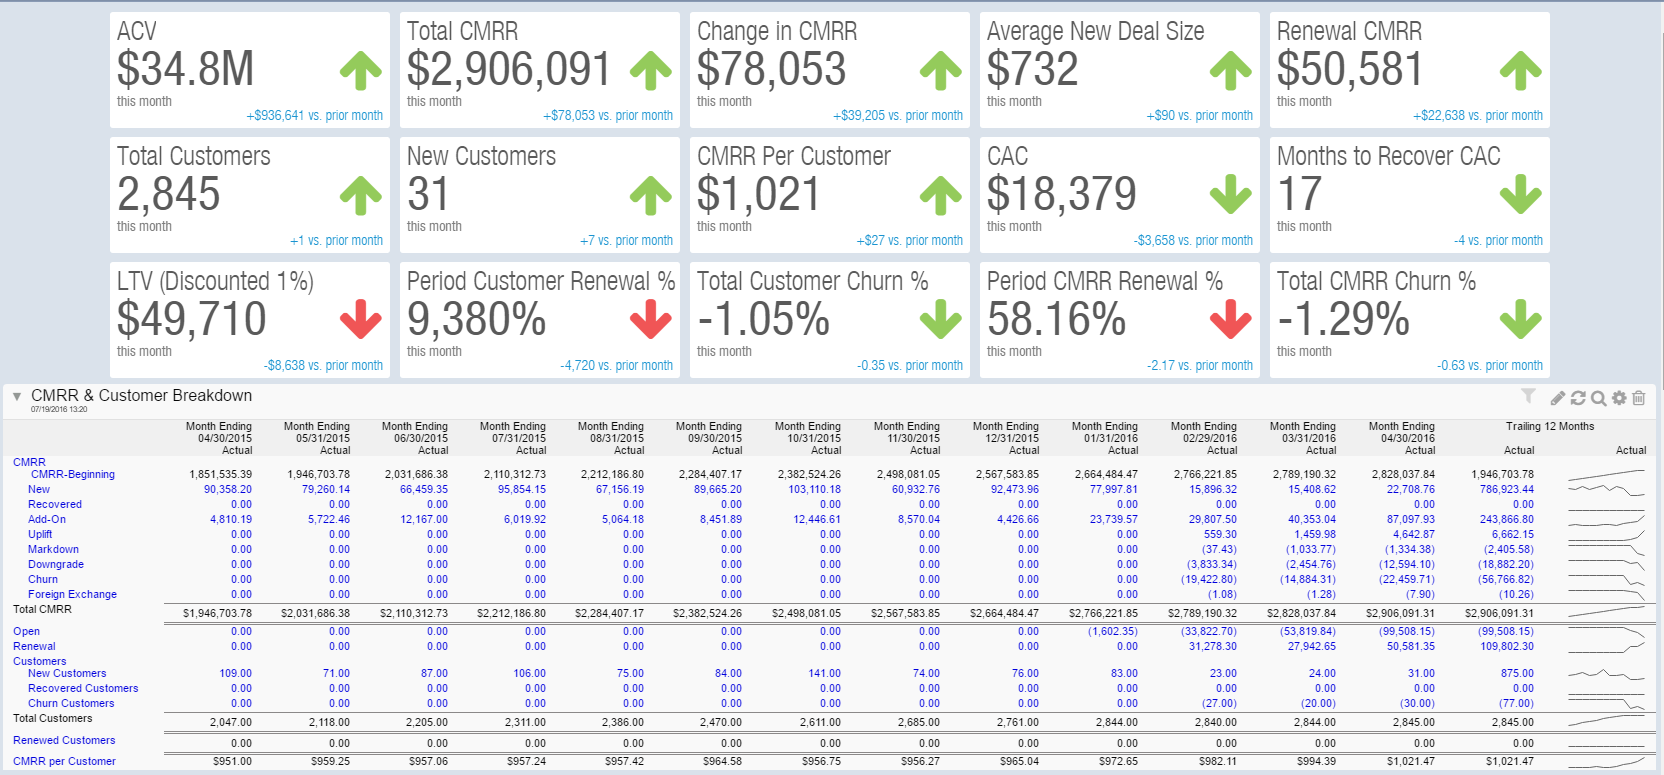 AcctTwo Introduces Advanced SaaS Dashboard for the Intacct Platform